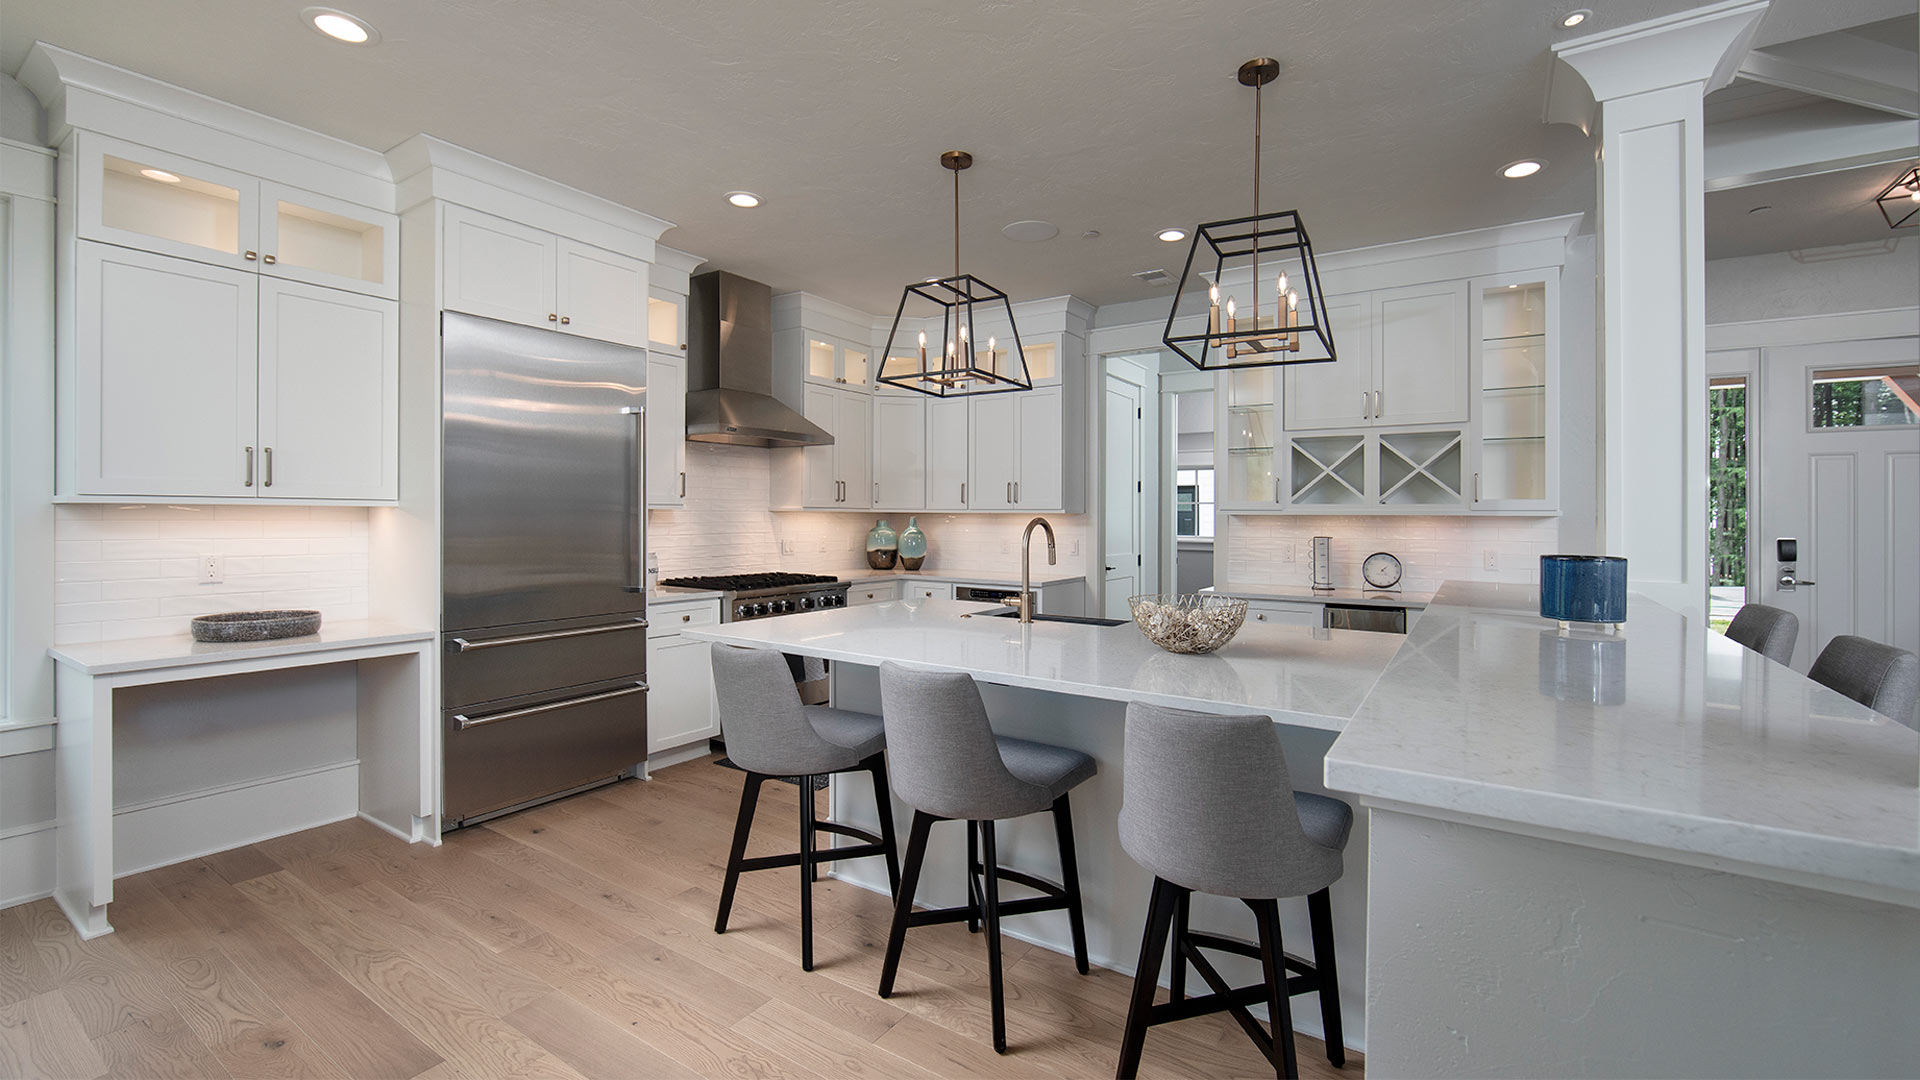 interior shot of a kitchen. The countertops and cabinets are a sleek white. There are gray chairs lining the kitchen island. There are stainless steel appliances.